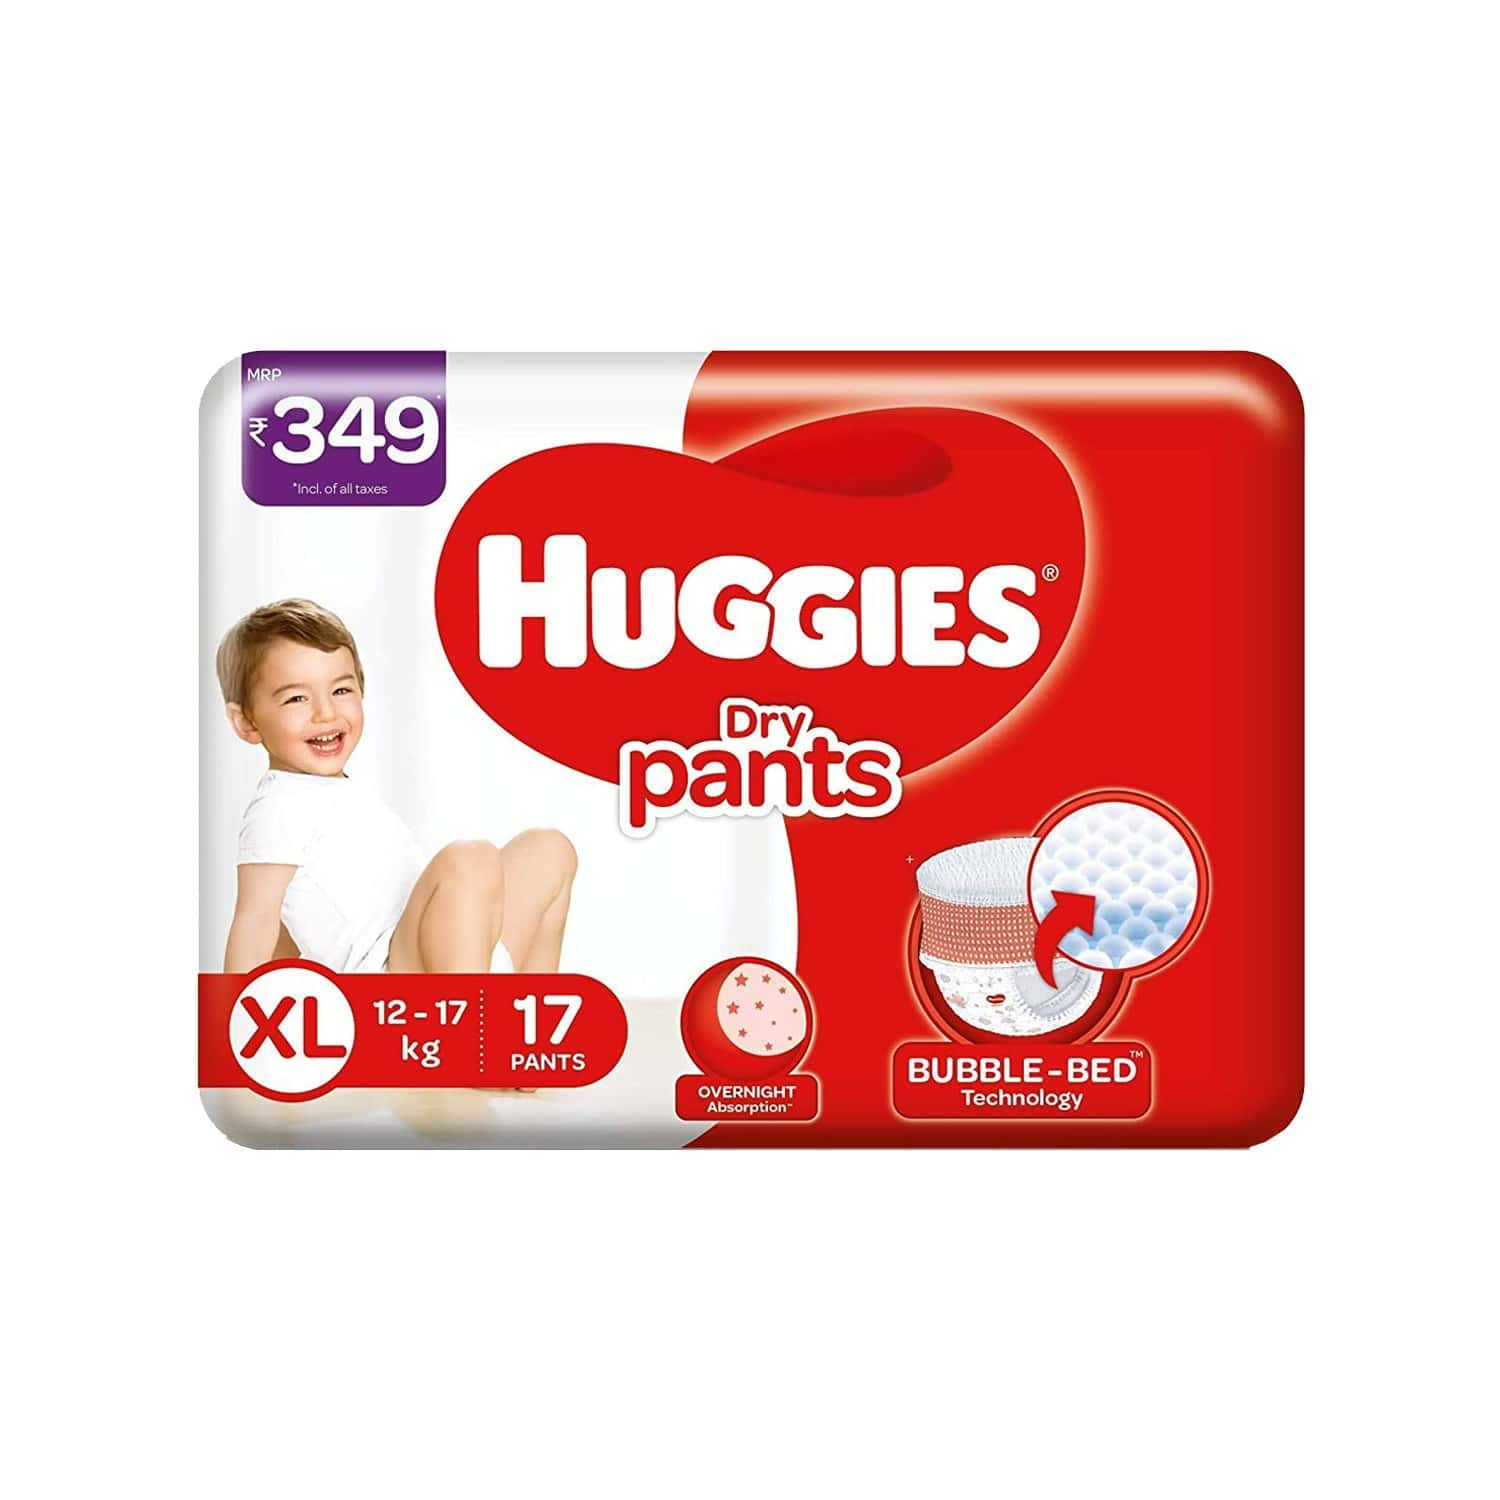 Huggies Dry Pants Diapers (extra Large Size) - 17 Count